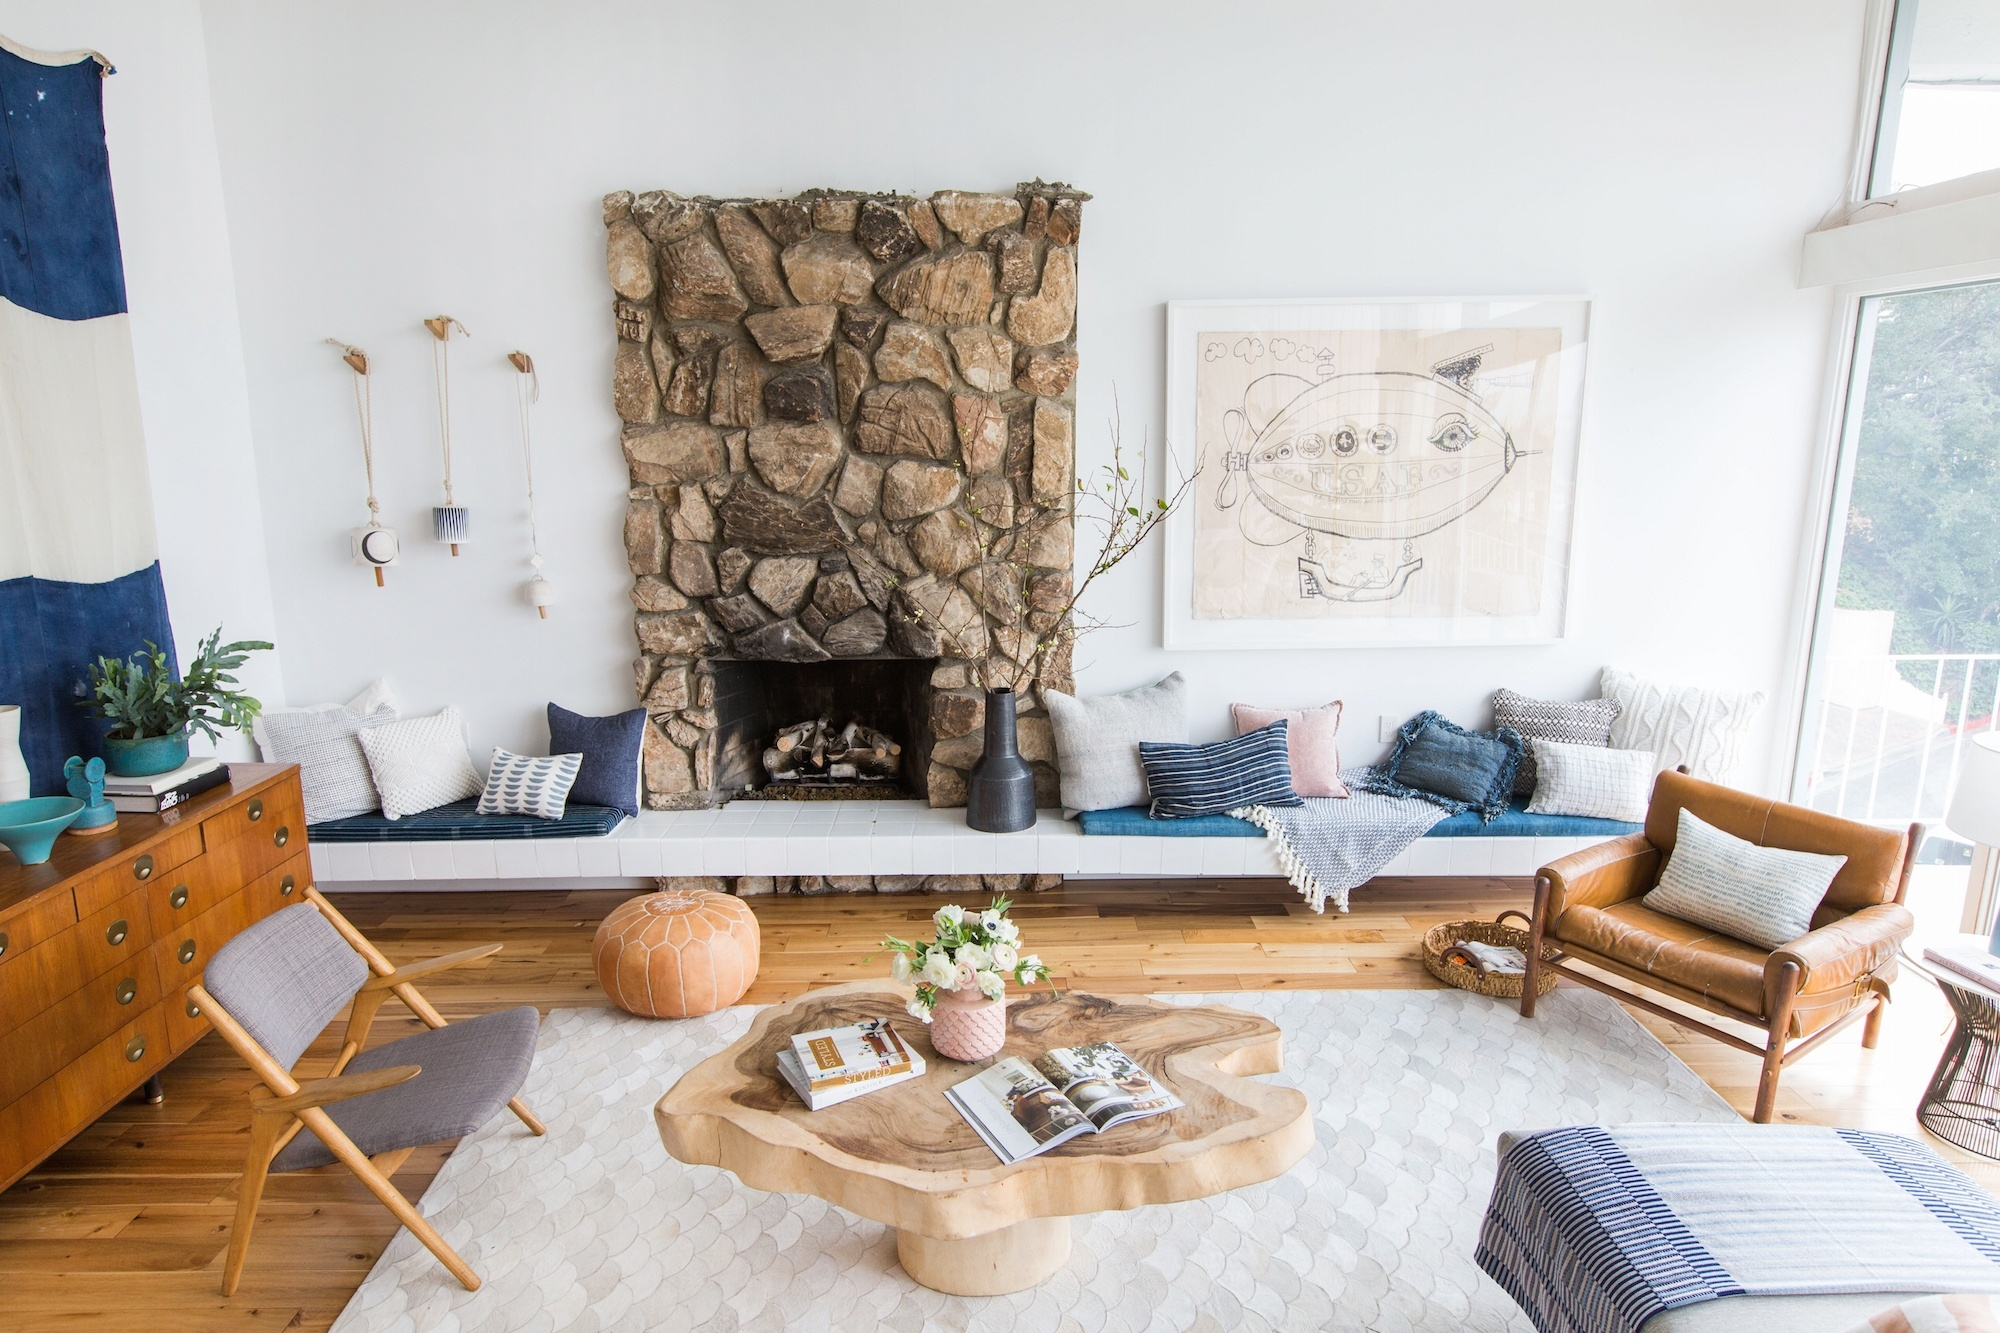 EMILY HENDERSON IS SELLING HER CALIFORNIA HOME AND IT CAN BE YOURS emily henderson EMILY HENDERSON IS SELLING HER CALIFORNIA HOME AND IT CAN BE YOURS EMILY HENDERSON IS SELLING HER CALIFORNIA HOME AND IT CAN BE YOURS 6